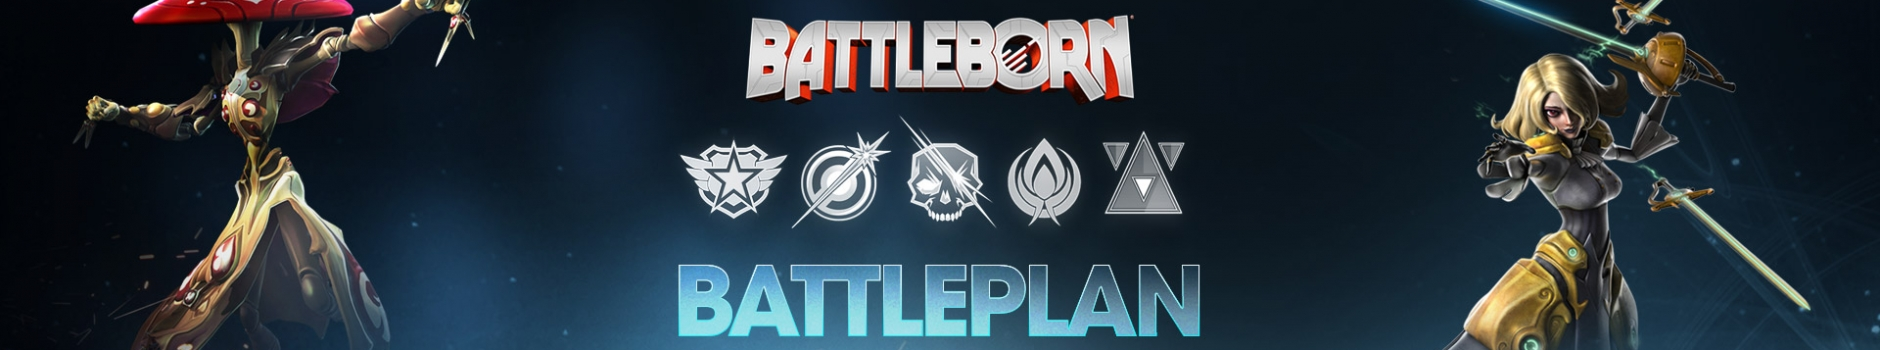 Battleplan 24: Kid Ultra Reveal Stream, Battleborn Fan Fiction, and Hot Fixes!